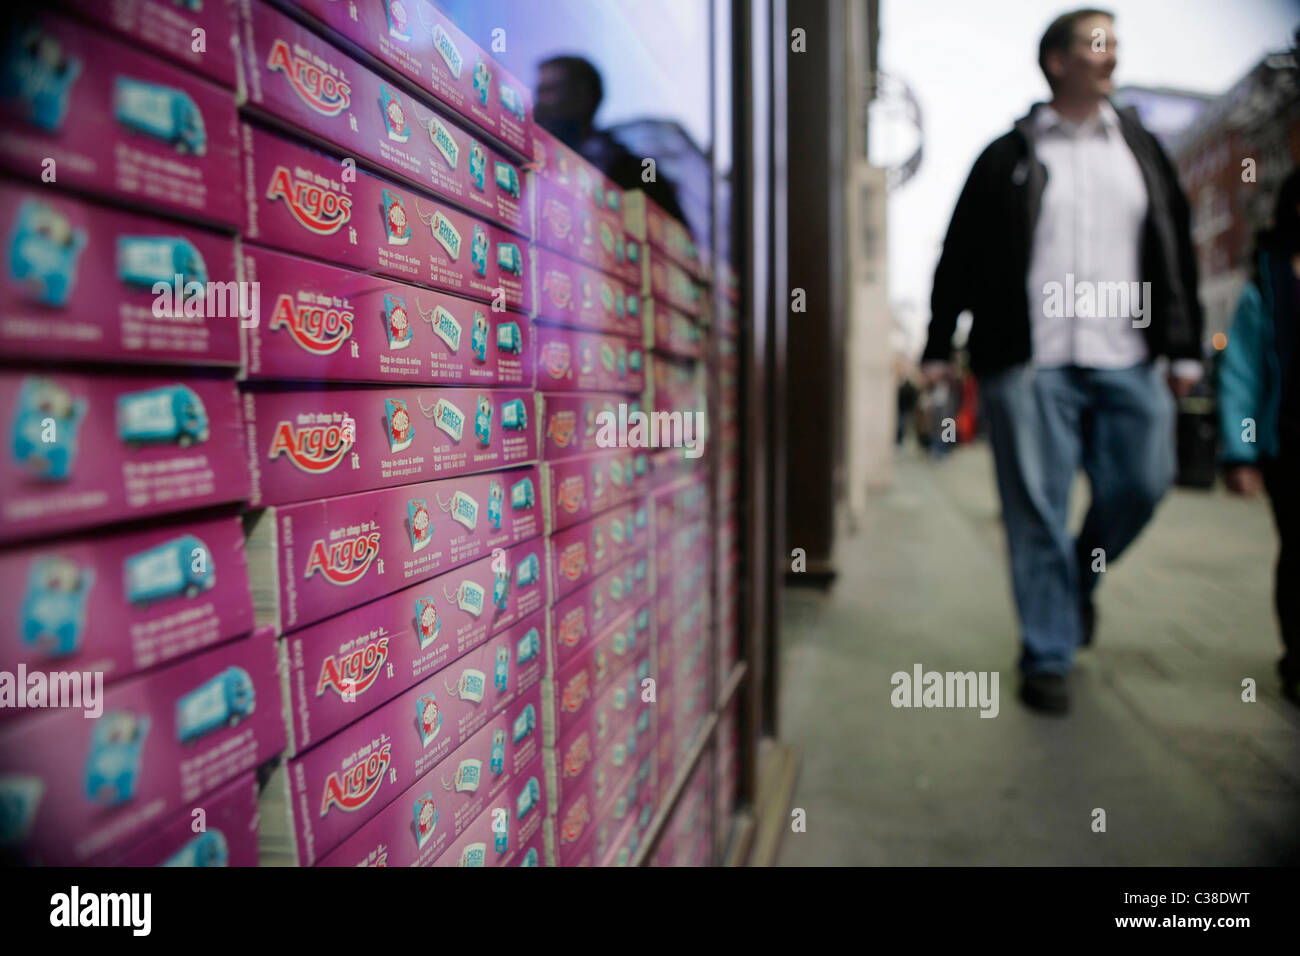 A pile of Argos catalogues stack insde a store window. Part of the Home Retail Group. - Stock Image